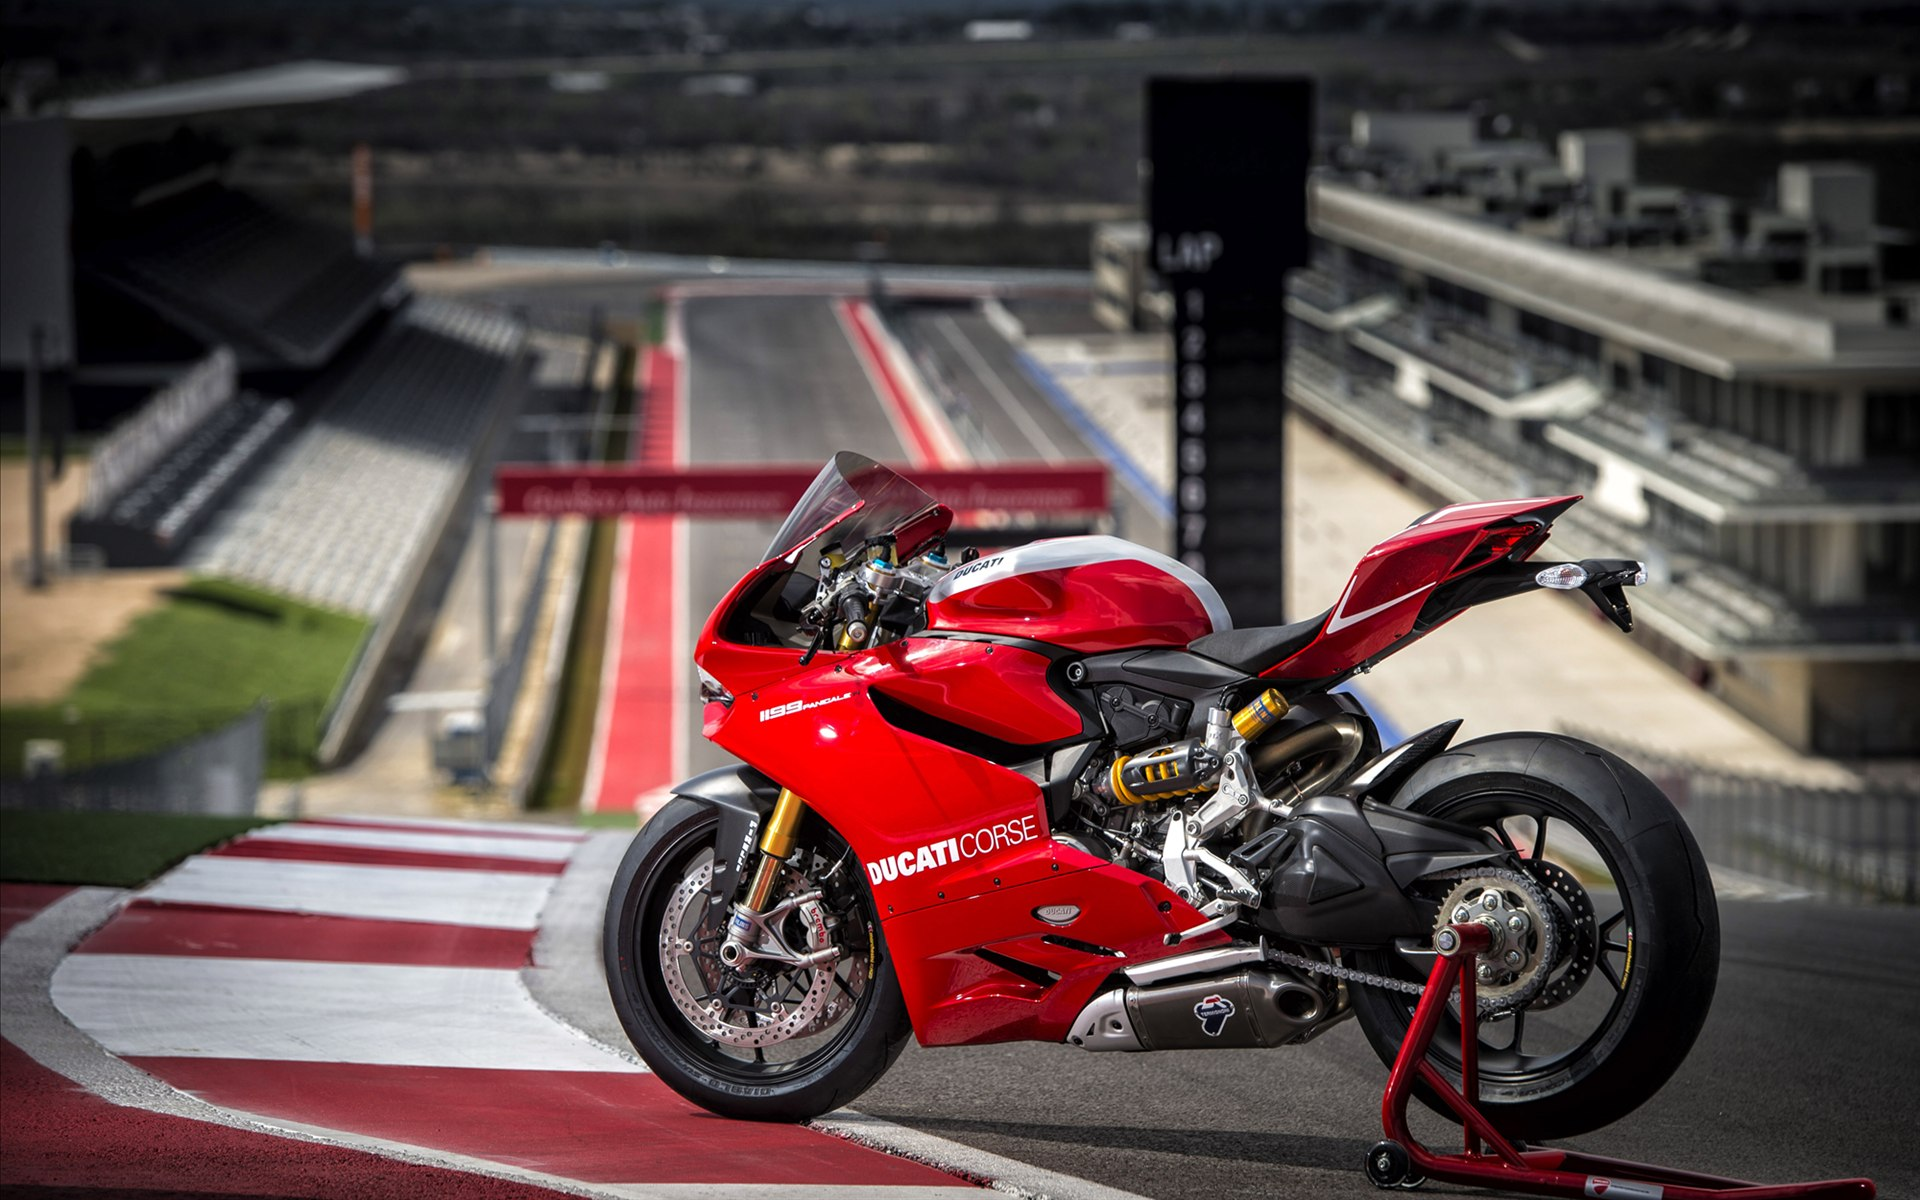 2013 Ducati Superbike 1199 Panigale R wallpaper 2018 in Motorcycles 1920x1200